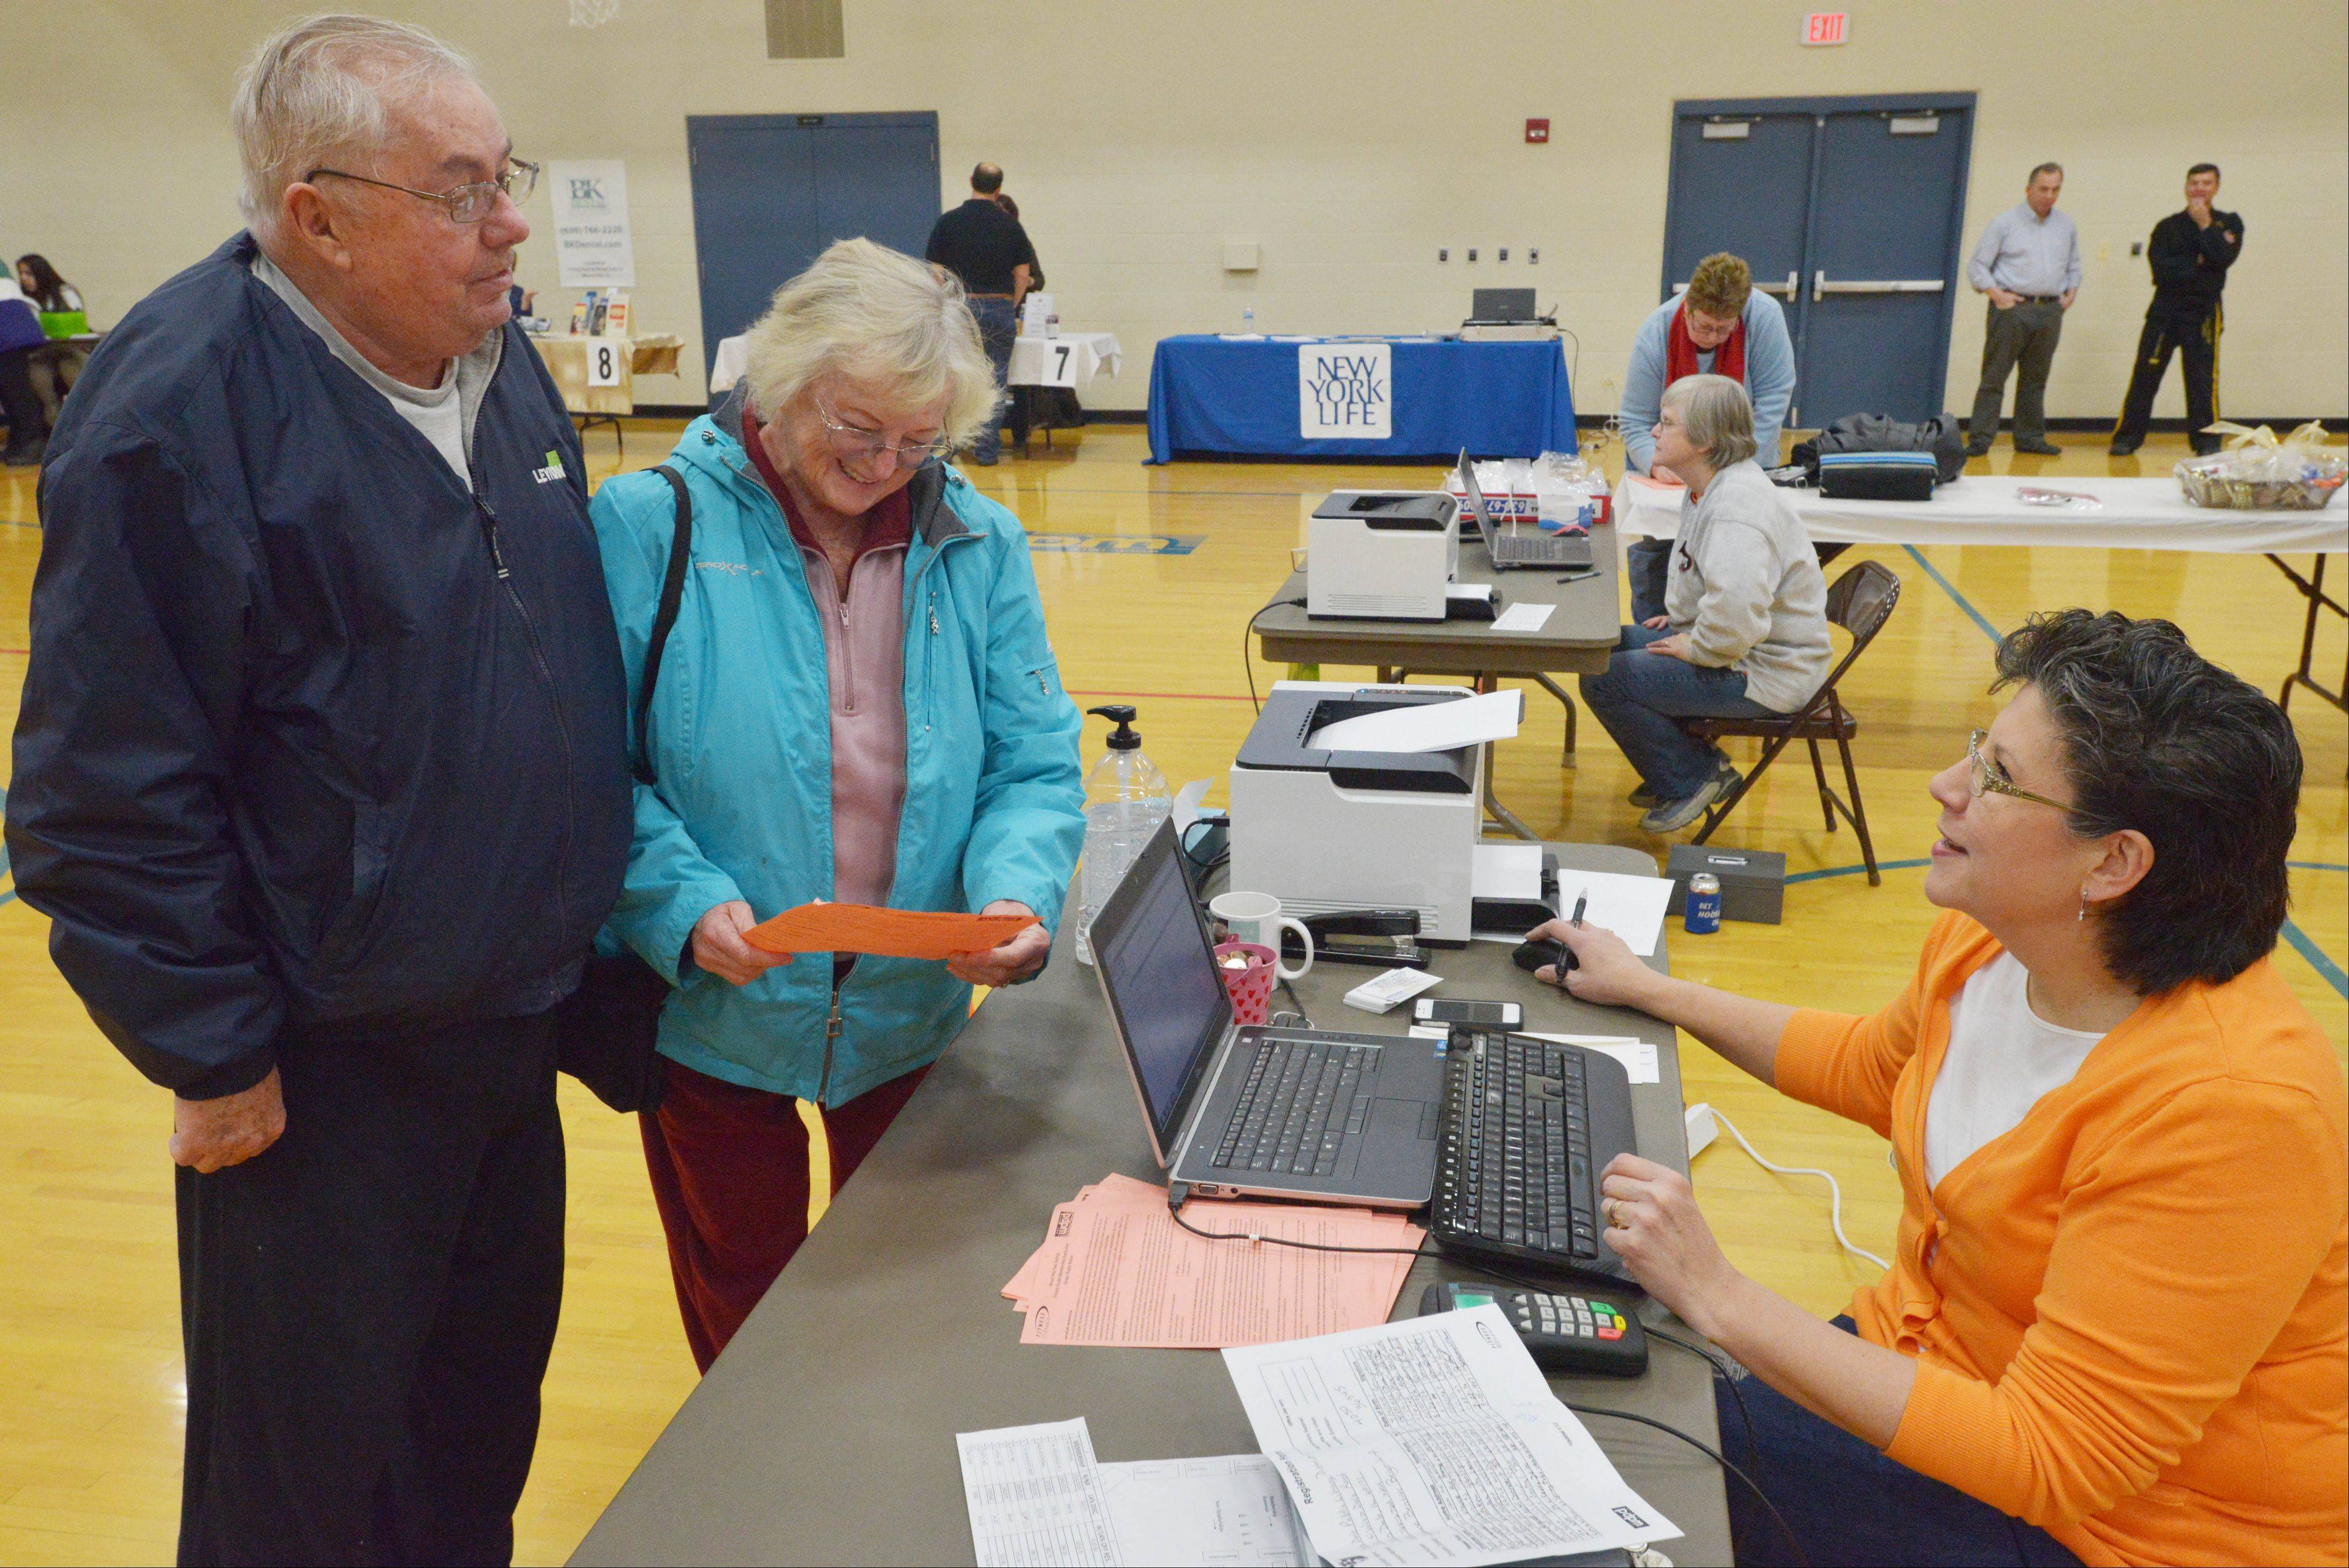 Fred and Ruth Pruim of Wood Dale sign up for the heath club during the health and resource fair at the Wood Dale Park District building Saturday. They were being helped by Linda Bray of the health club.